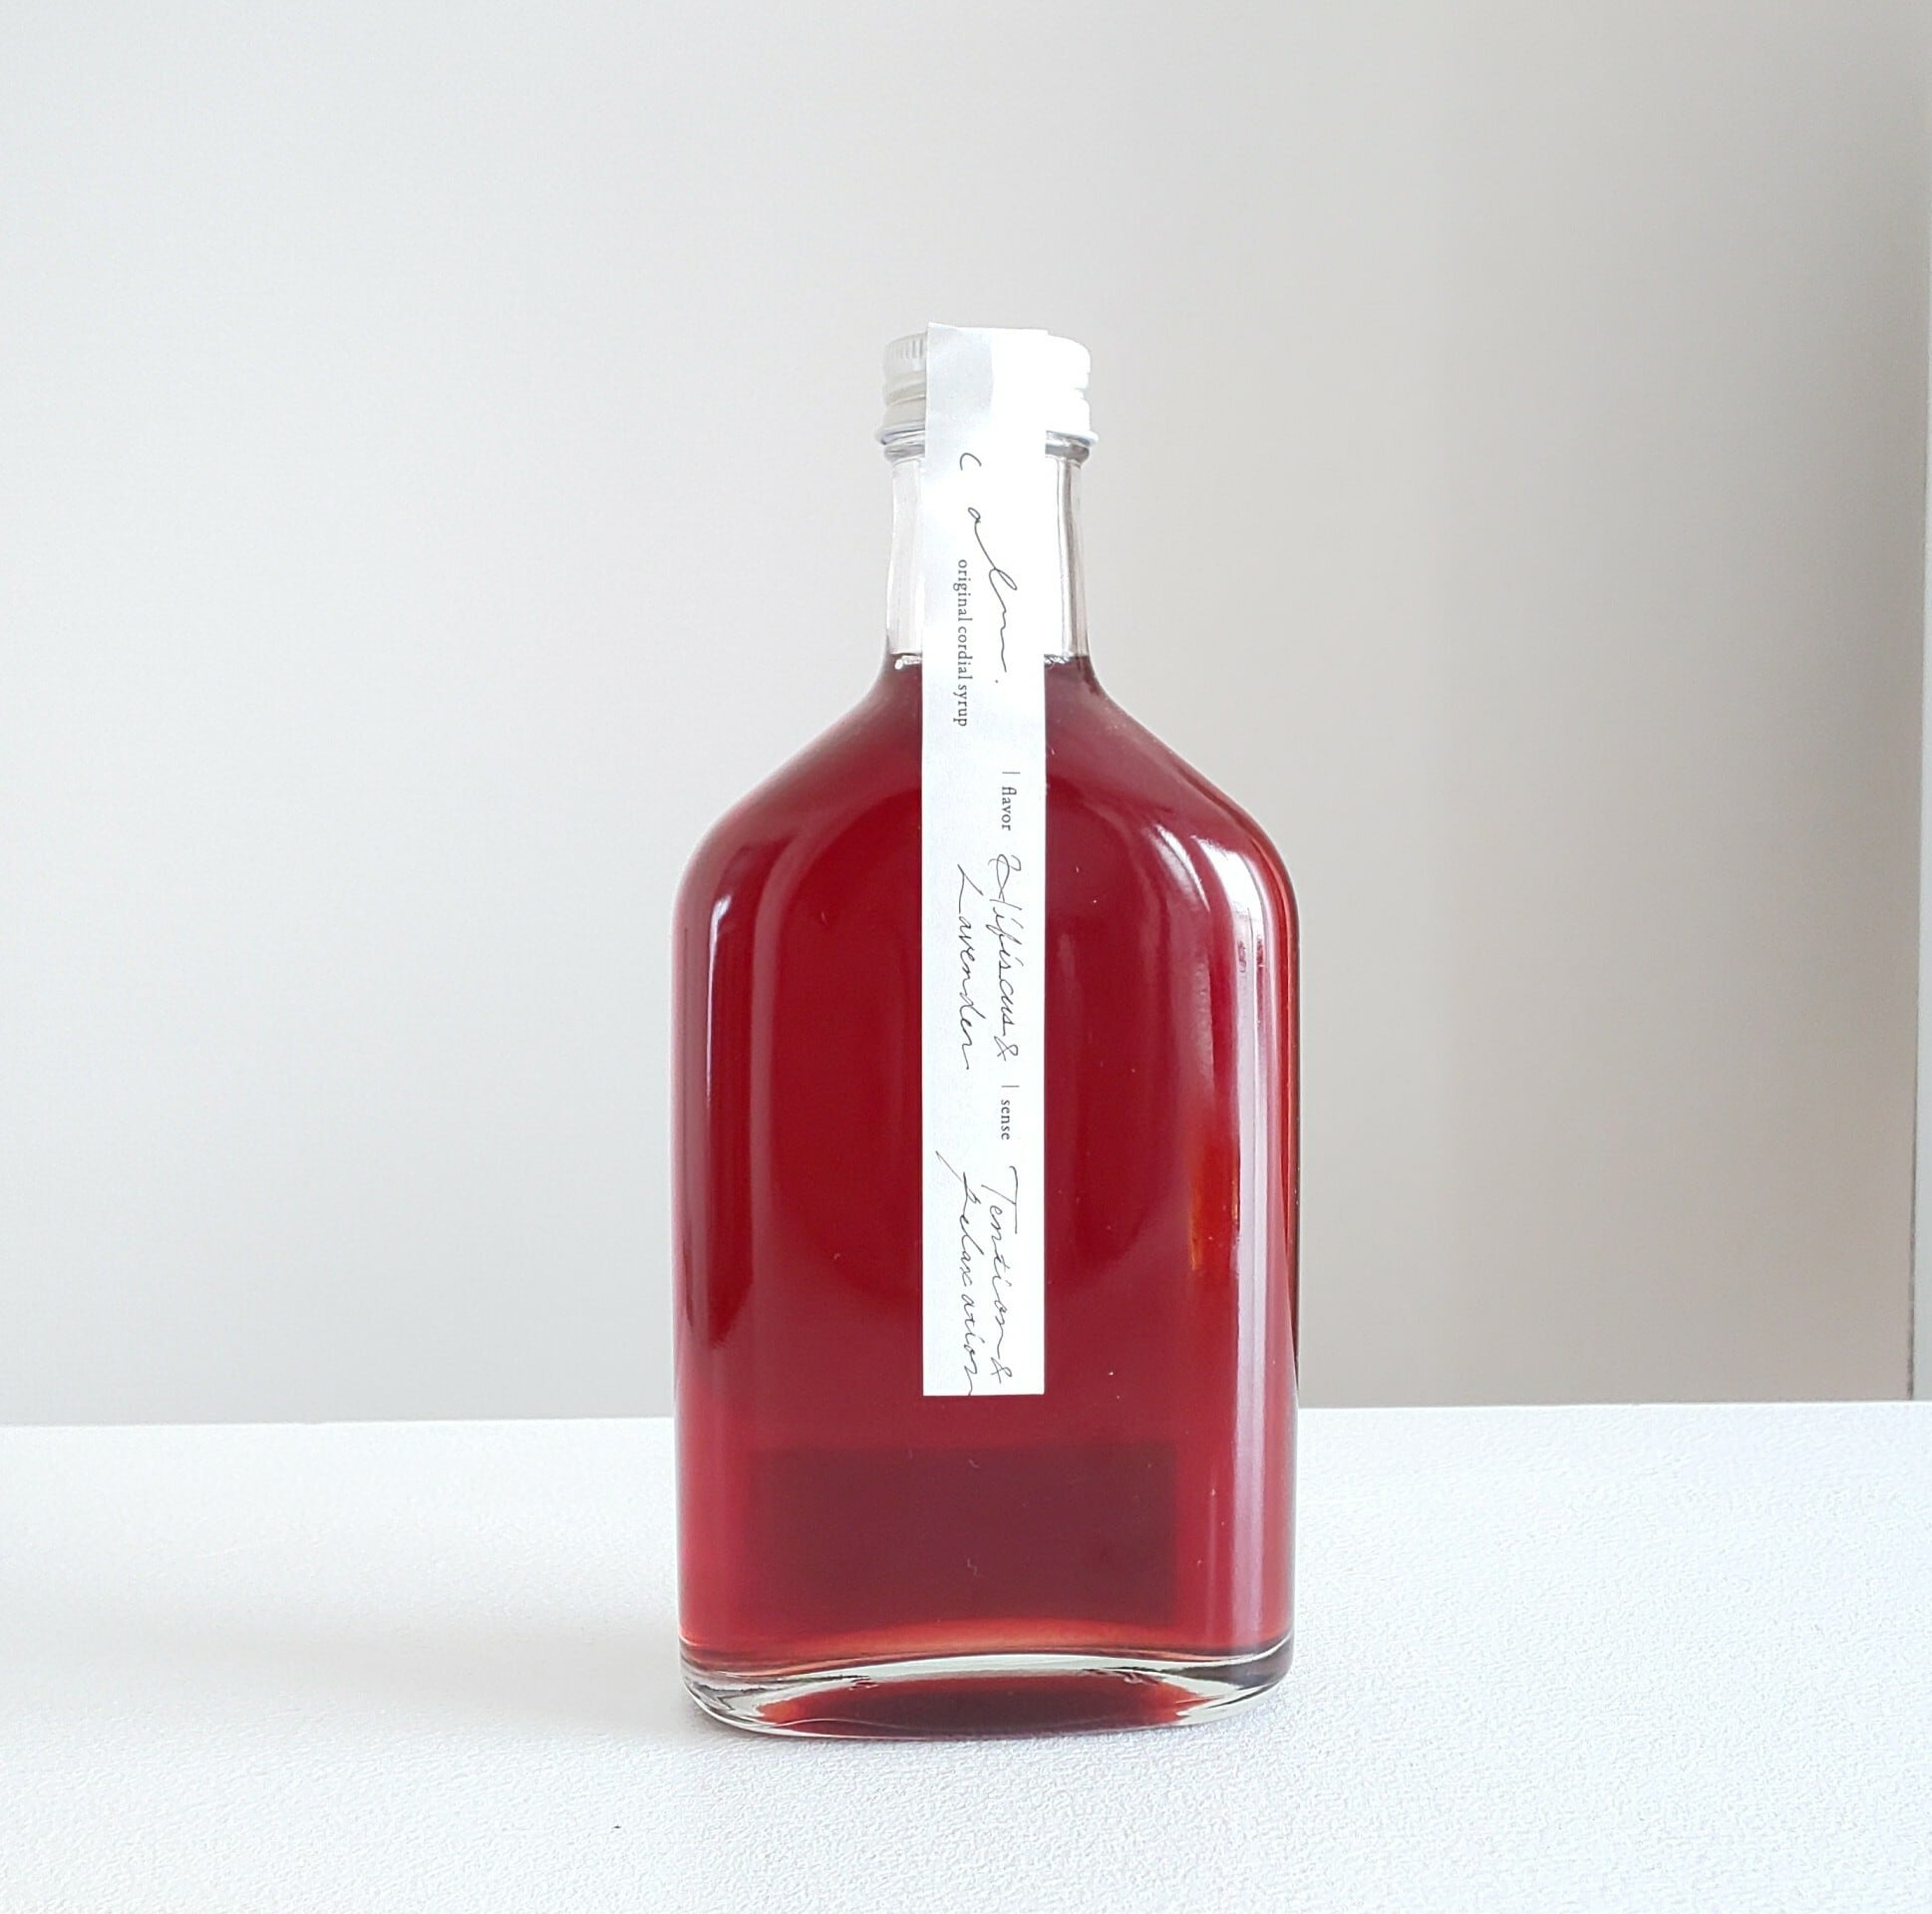 Hibiscus & Lavender syrup